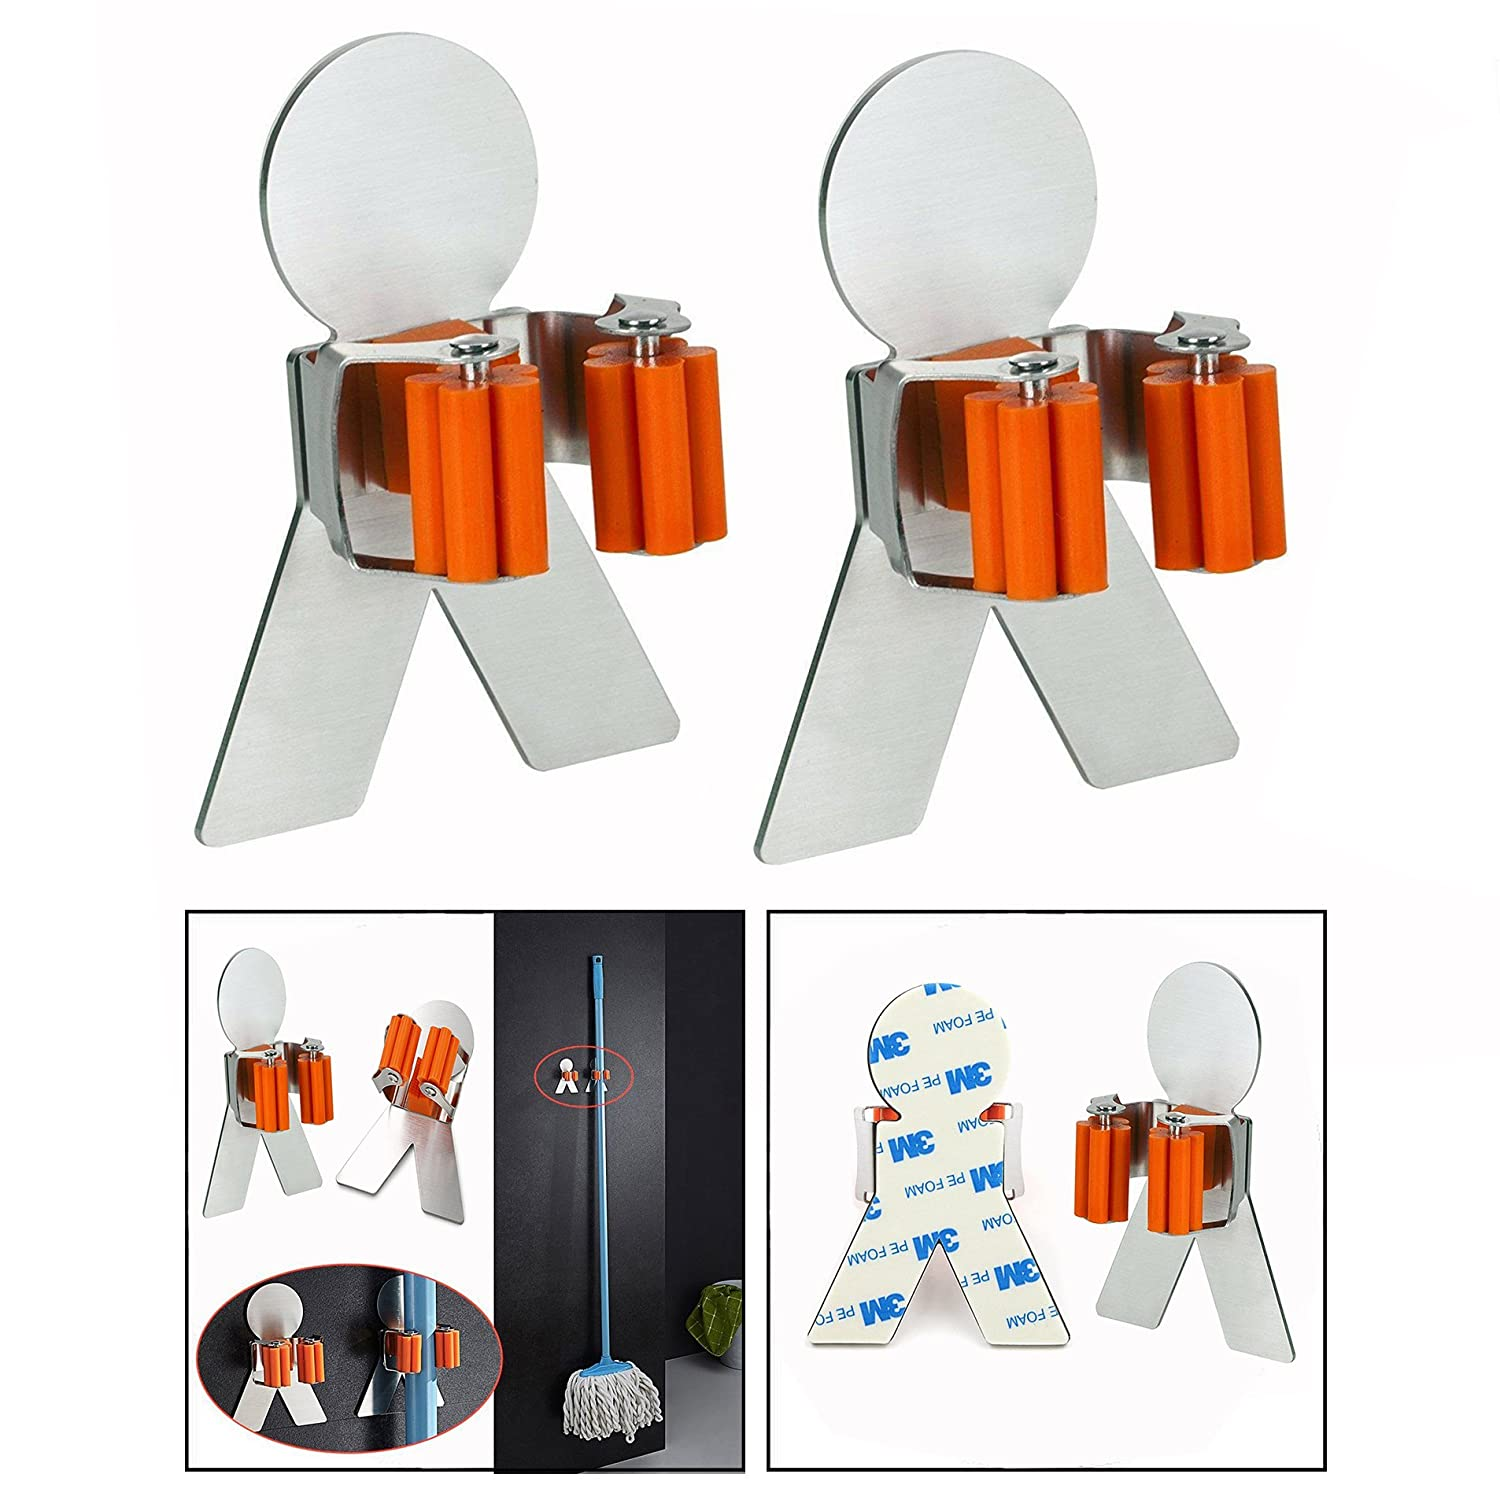 OFKPO 2 Pcs Stainless Steel Mop Broom Holder with 3M Self Adhesive Organizer Rack for Home Bathroom